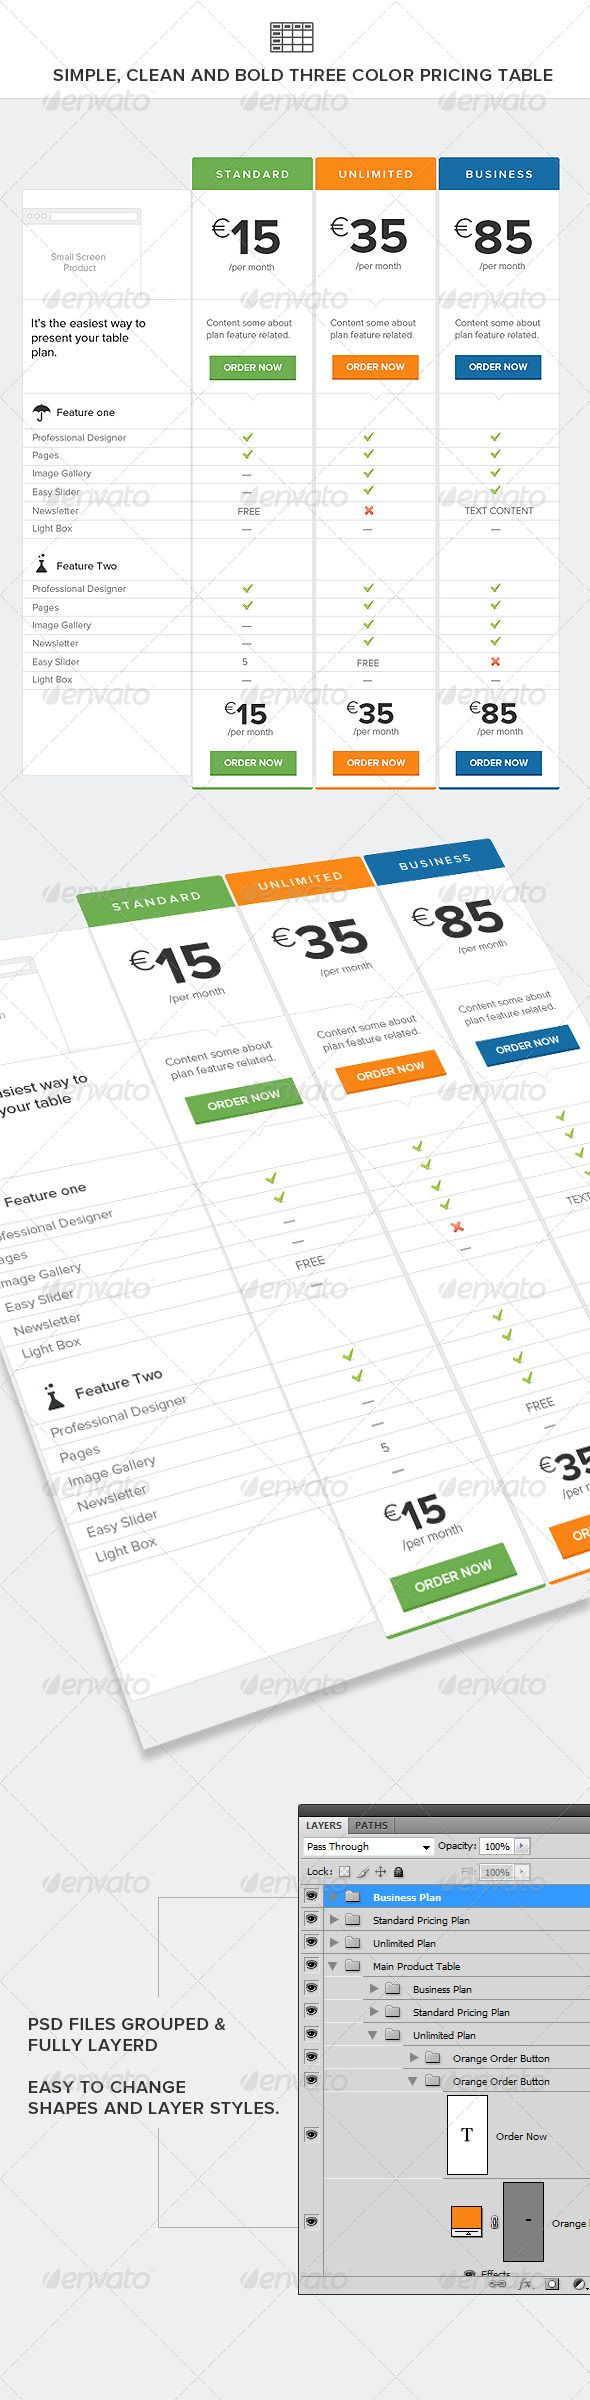 Simple, Clean and Bold Three Color Pricing Table  #GraphicRiver         Clean and bold table PSD Files are fully editable and very well organized, layer name. All elements are shapes, so you can resize them easily without losing quality.  Google Fonts  .google /fonts/specimen/Lato     Created: 30April13 GraphicsFilesIncluded: PhotoshopPSD HighResolution: Yes Layered: Yes MinimumAdobeCSVersion: CS4 PixelDimensions: 1300x2657 Tags: blue #clean #feature #green #orange #ordernow #pricingtable…